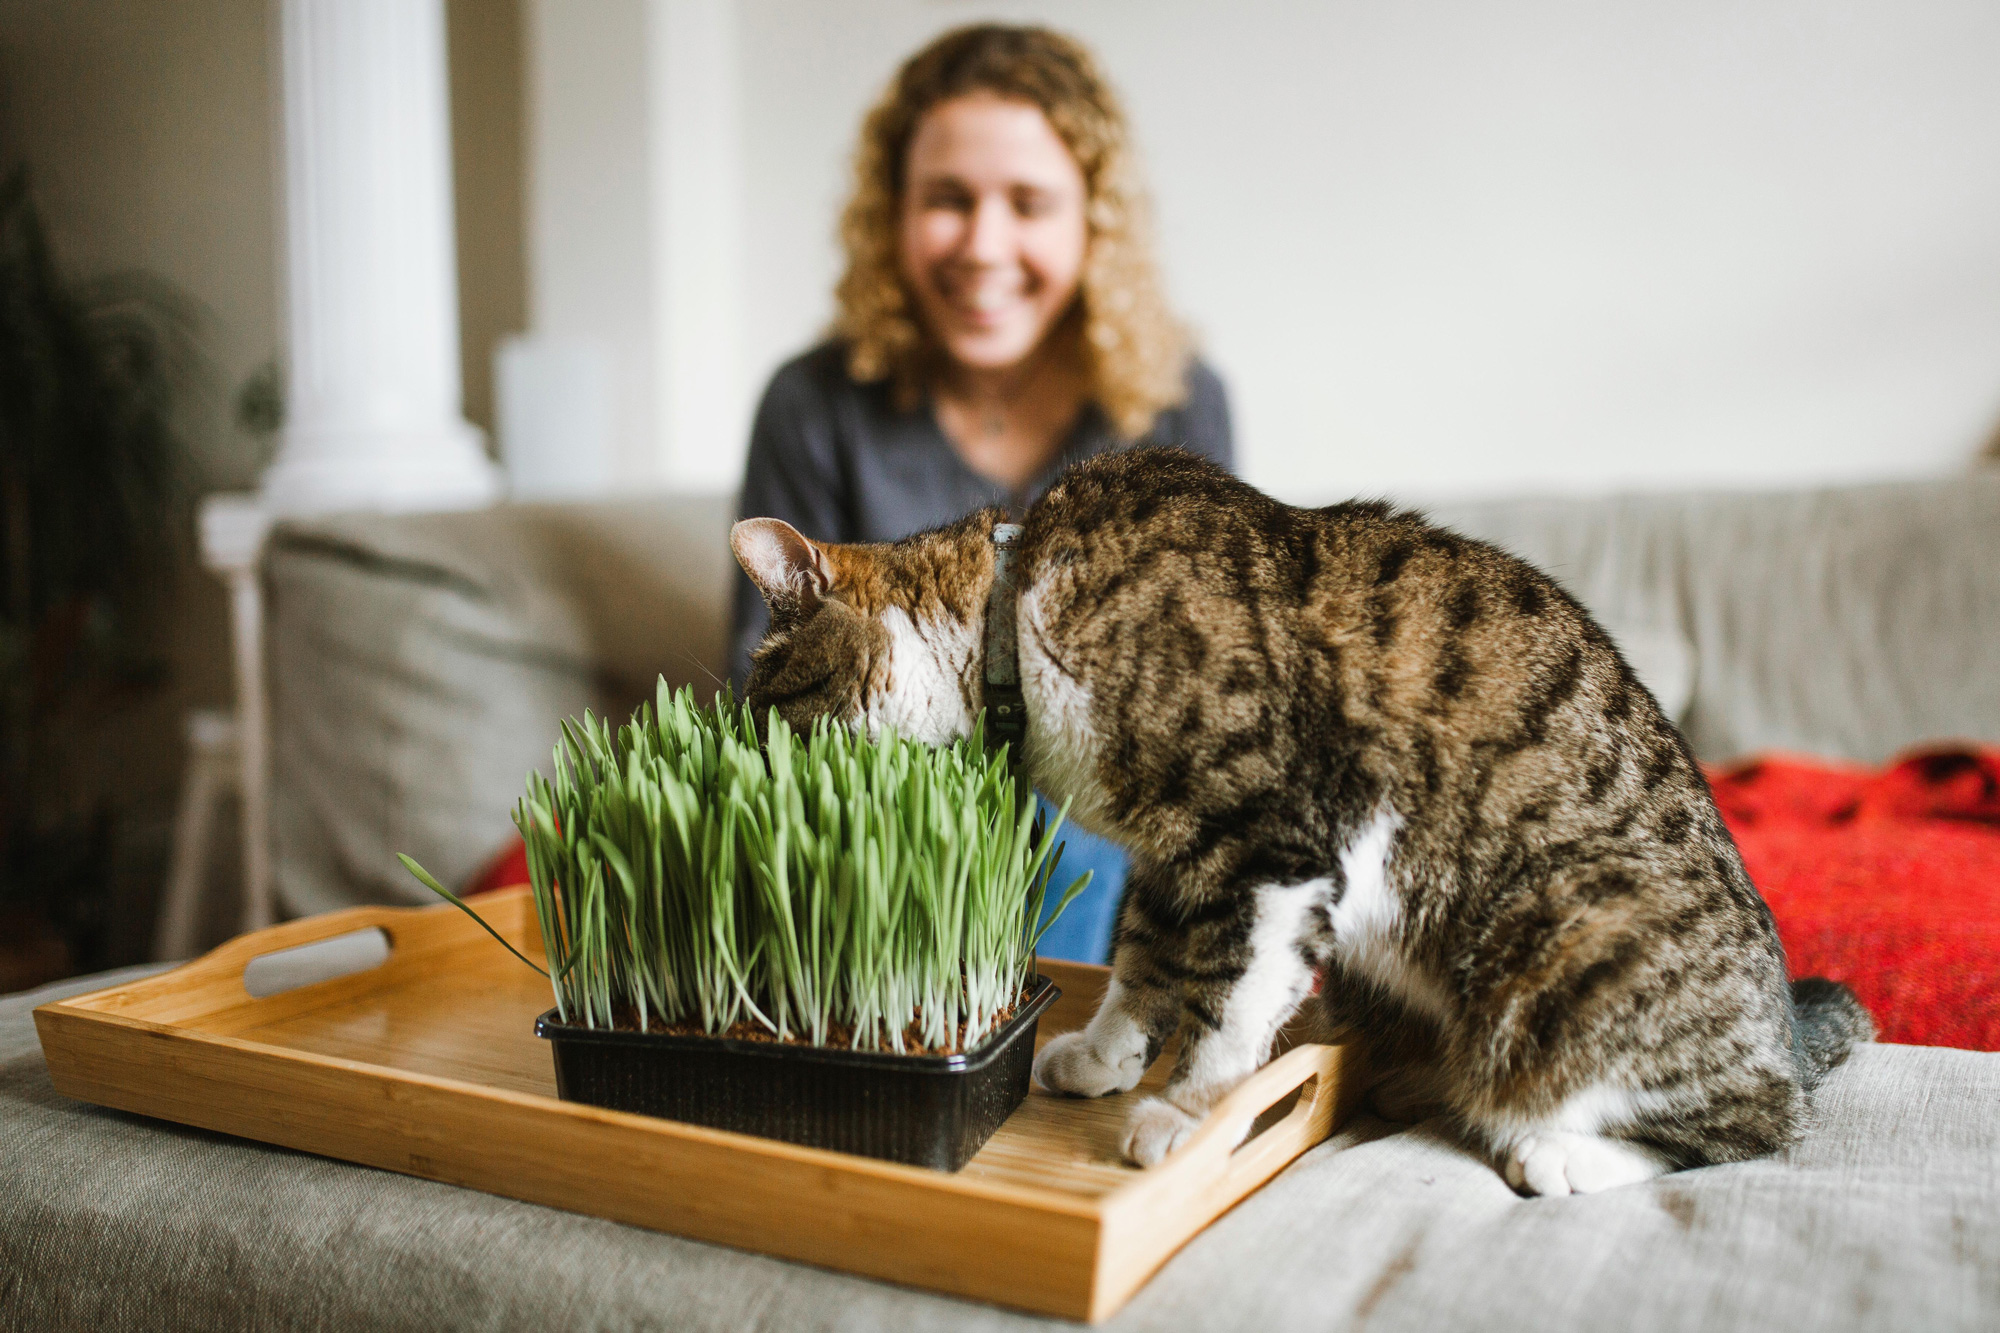 cat eating grass indoors